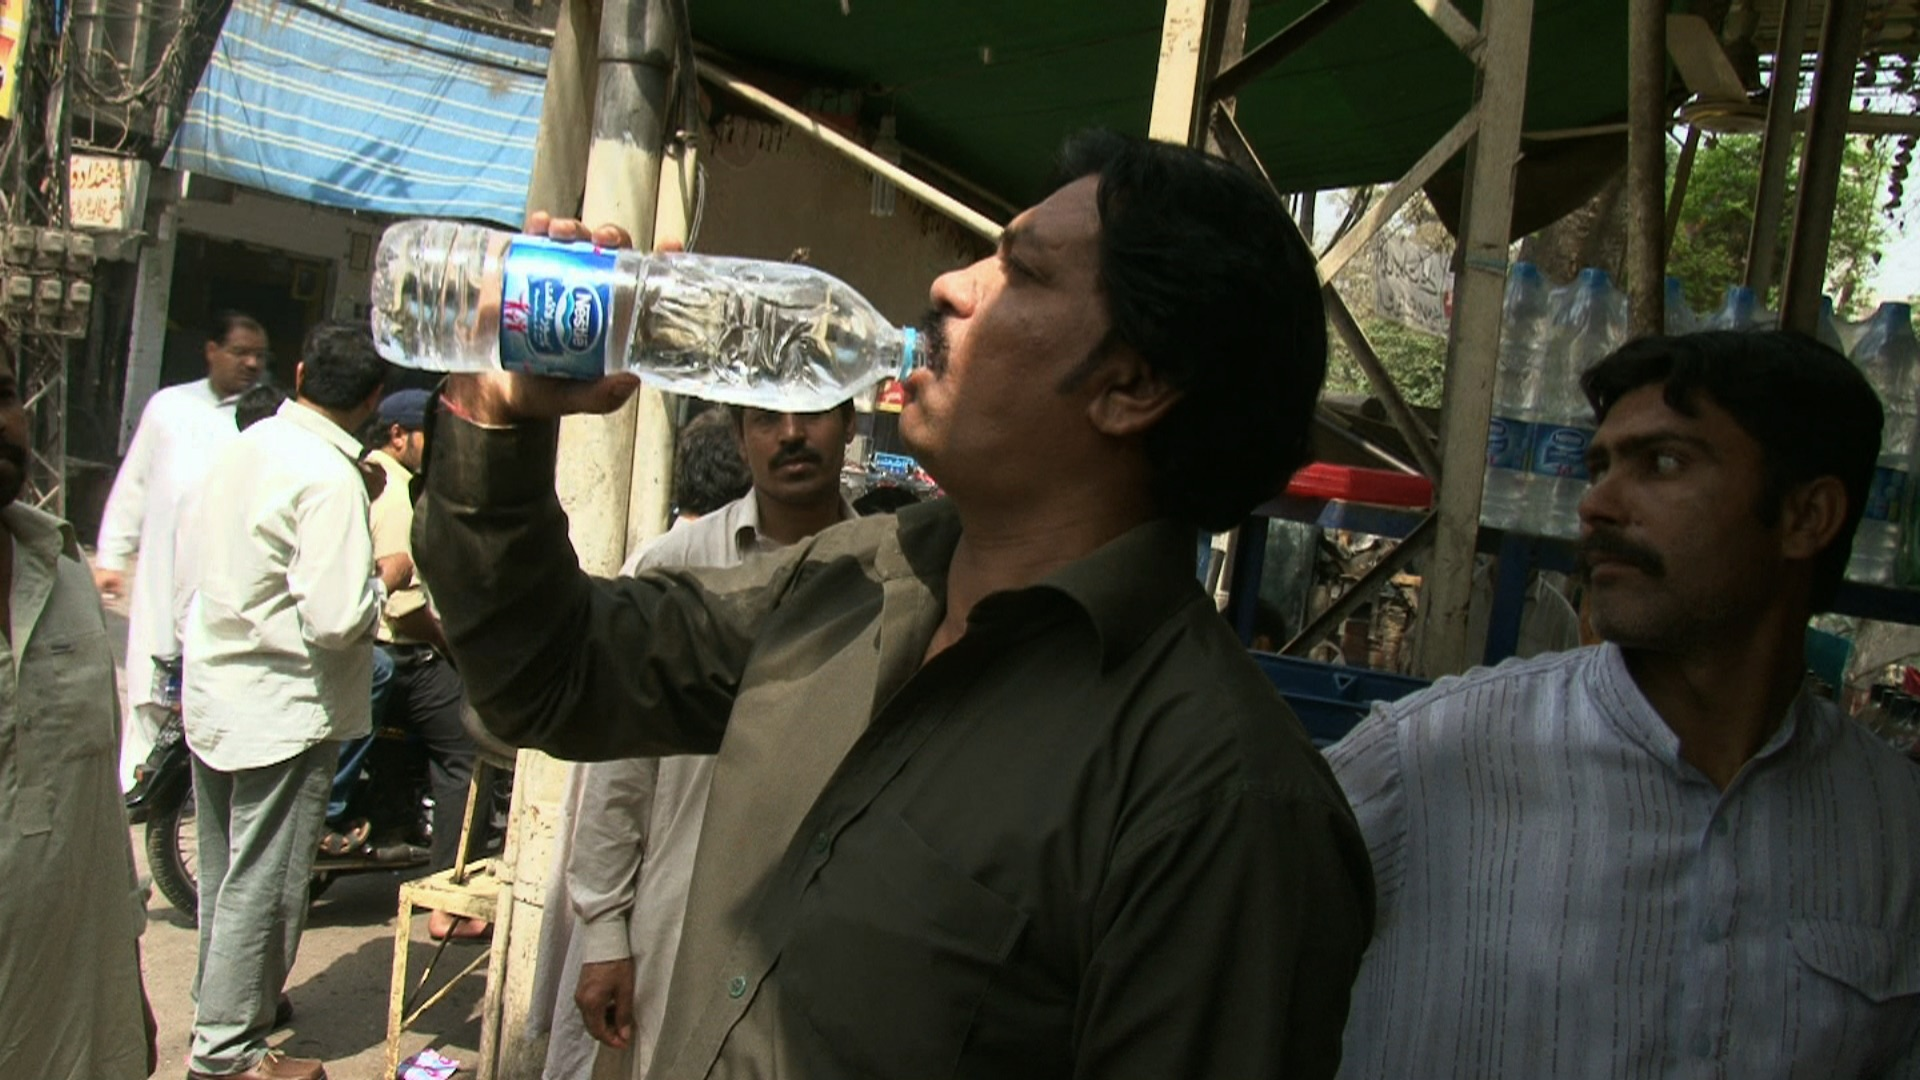 tl_files/images/the_fear/bl_pakistani_drinking_purelife.jpg